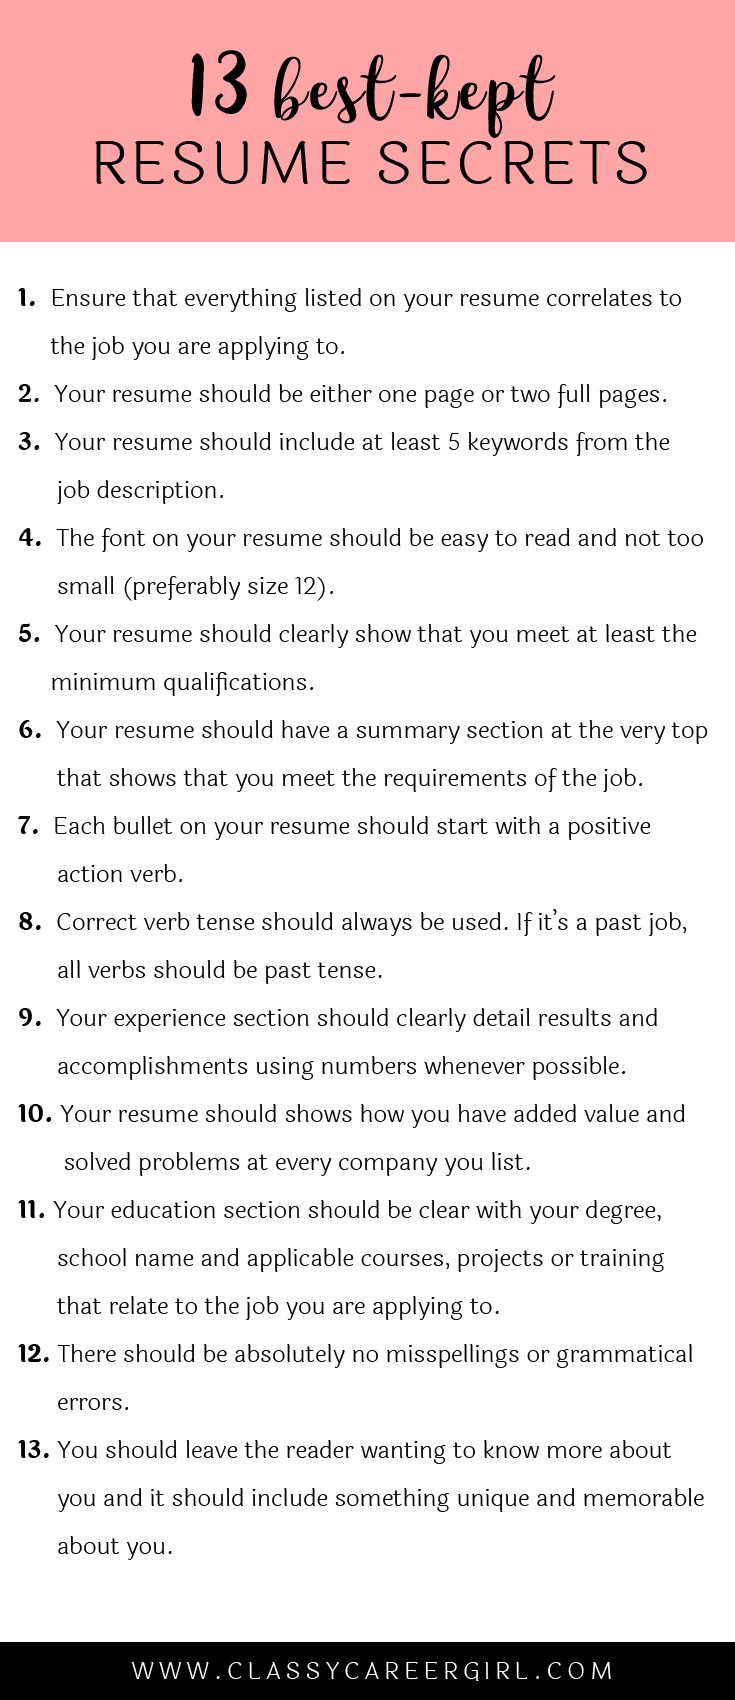 Opposenewapstandardsus  Scenic  Ideas About Resume On Pinterest  Cv Format Resume Cv And  With Foxy Some Hiring Managers Will Toss Your Resume Out If You Dont Know These  With Beautiful Postpartum Nurse Resume Also Rules For Resumes In Addition What Skills Do You Put On A Resume And Resume Spider As Well As Resume Skills Summary Examples Additionally Different Kinds Of Resumes From Pinterestcom With Opposenewapstandardsus  Foxy  Ideas About Resume On Pinterest  Cv Format Resume Cv And  With Beautiful Some Hiring Managers Will Toss Your Resume Out If You Dont Know These  And Scenic Postpartum Nurse Resume Also Rules For Resumes In Addition What Skills Do You Put On A Resume From Pinterestcom